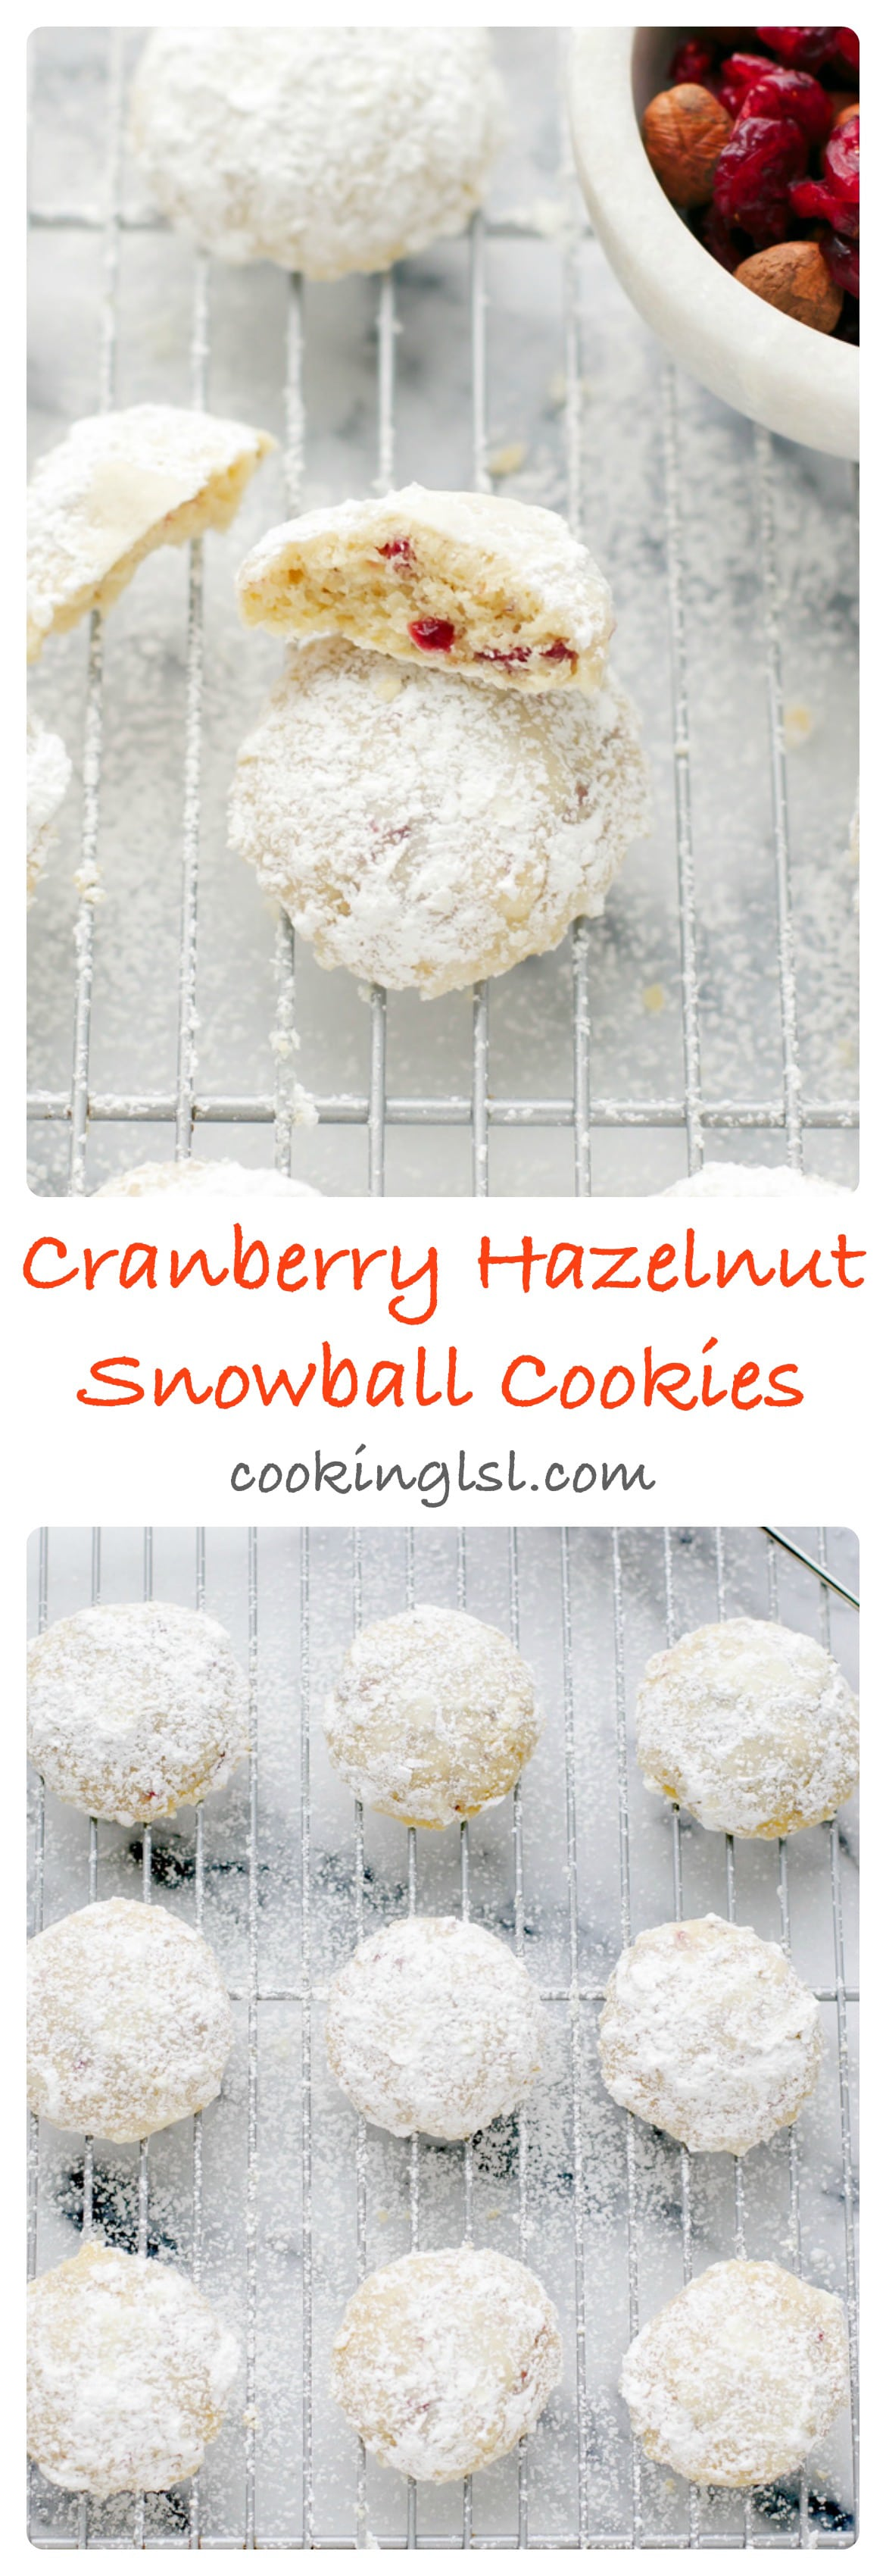 cranberry-hazelnut-snowball-cookies